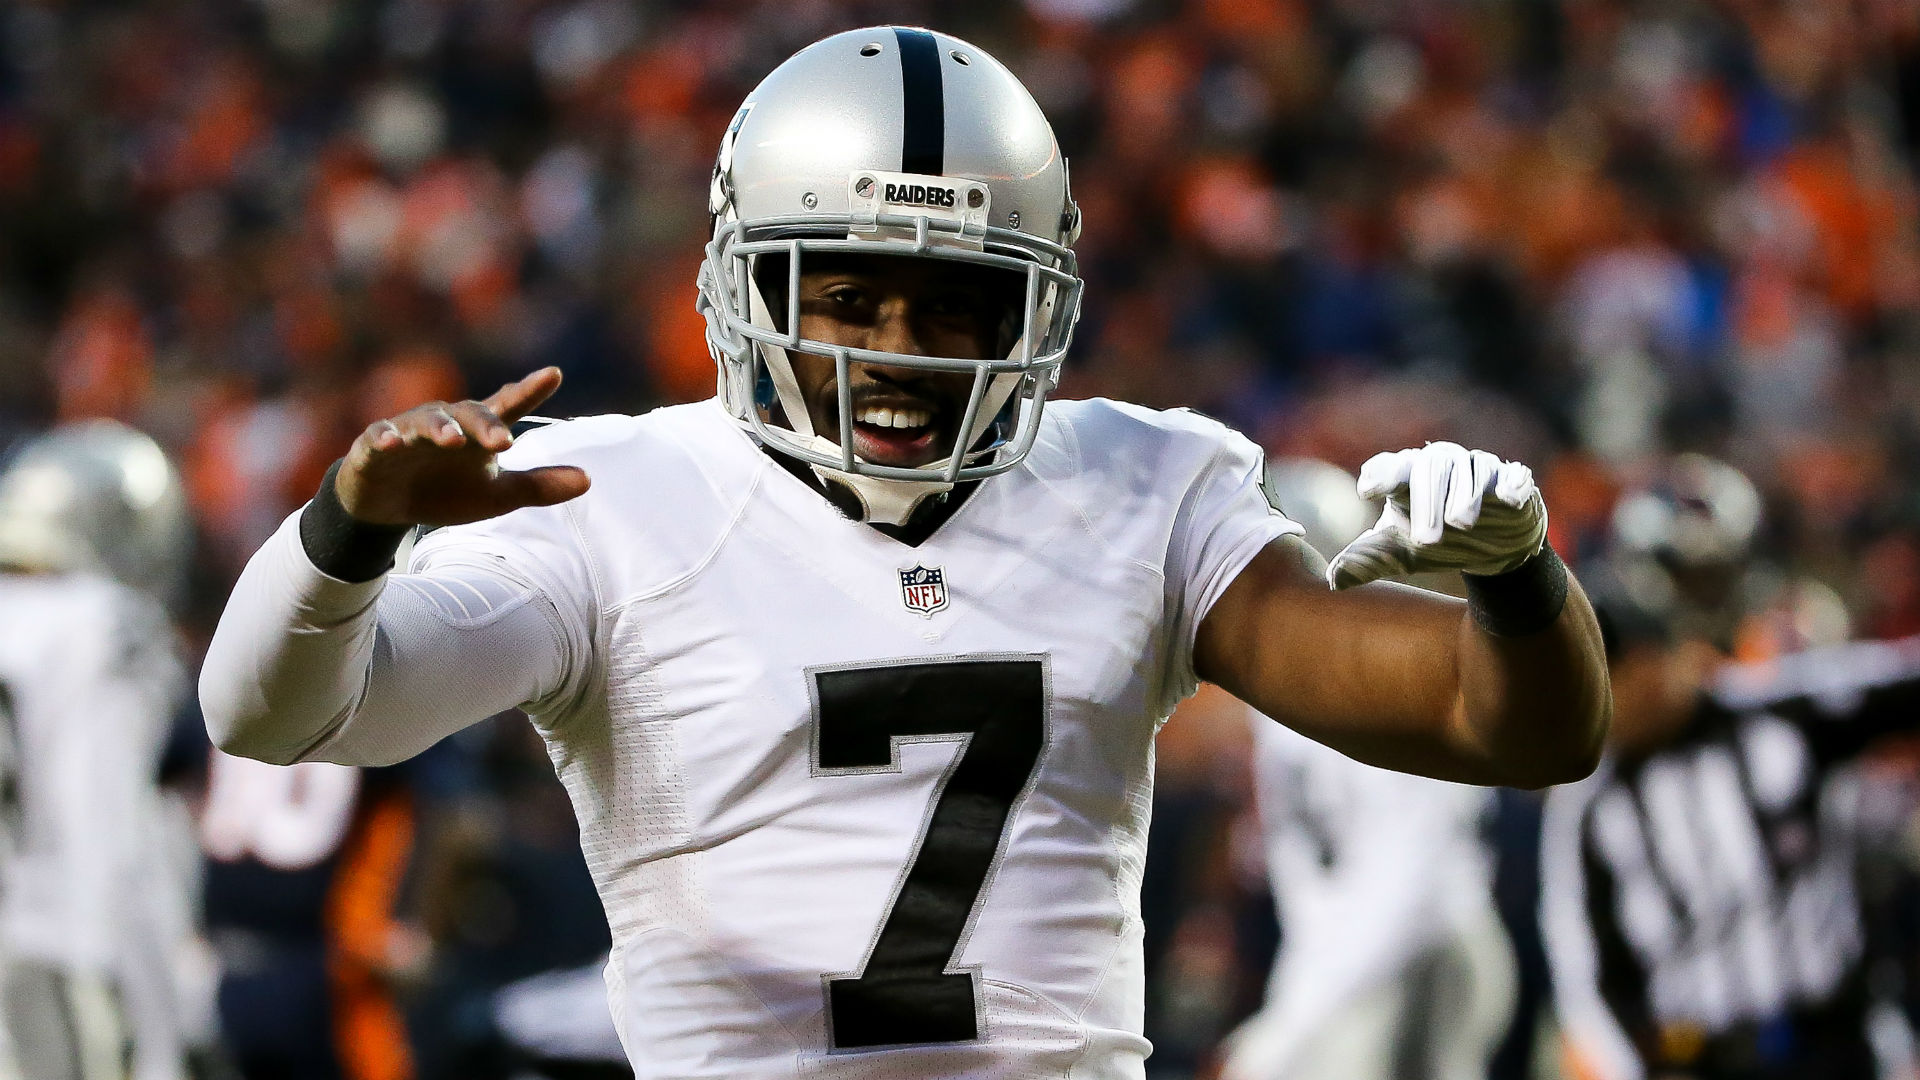 Raiders' Bruce Irvin stokes Marquette King feud with veiled threat